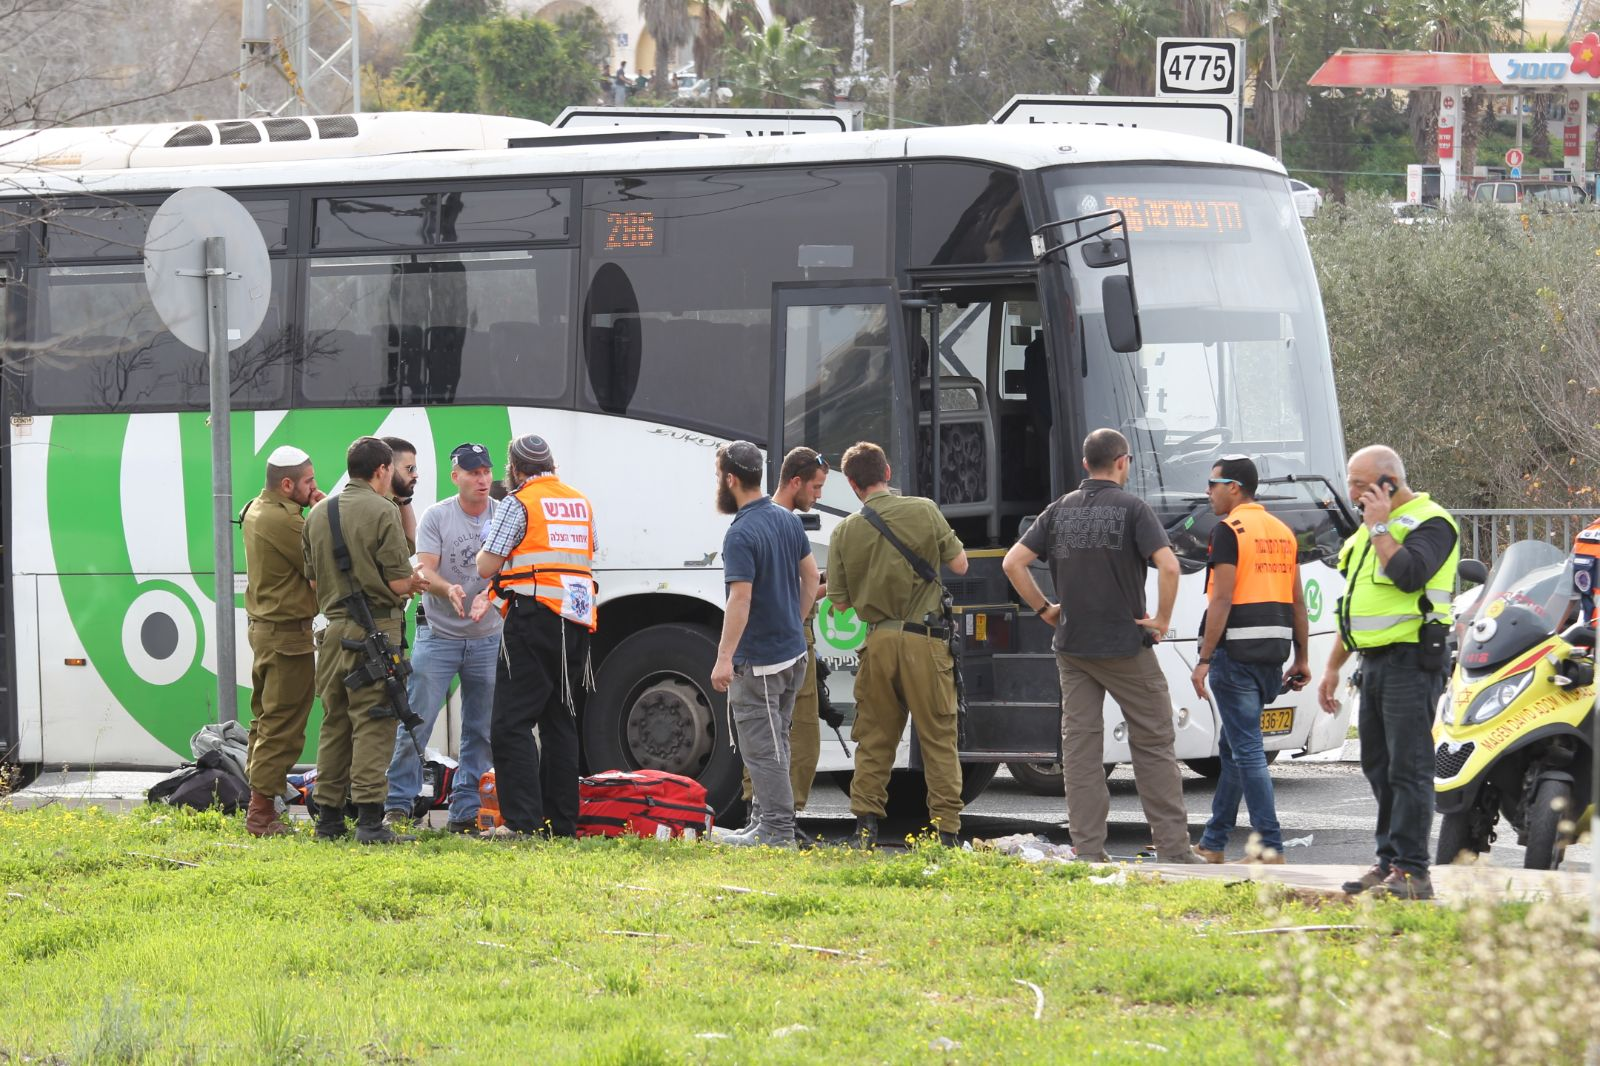 Palestinian media outlets: Suspects arrested during manhunt for Ariel terrorist